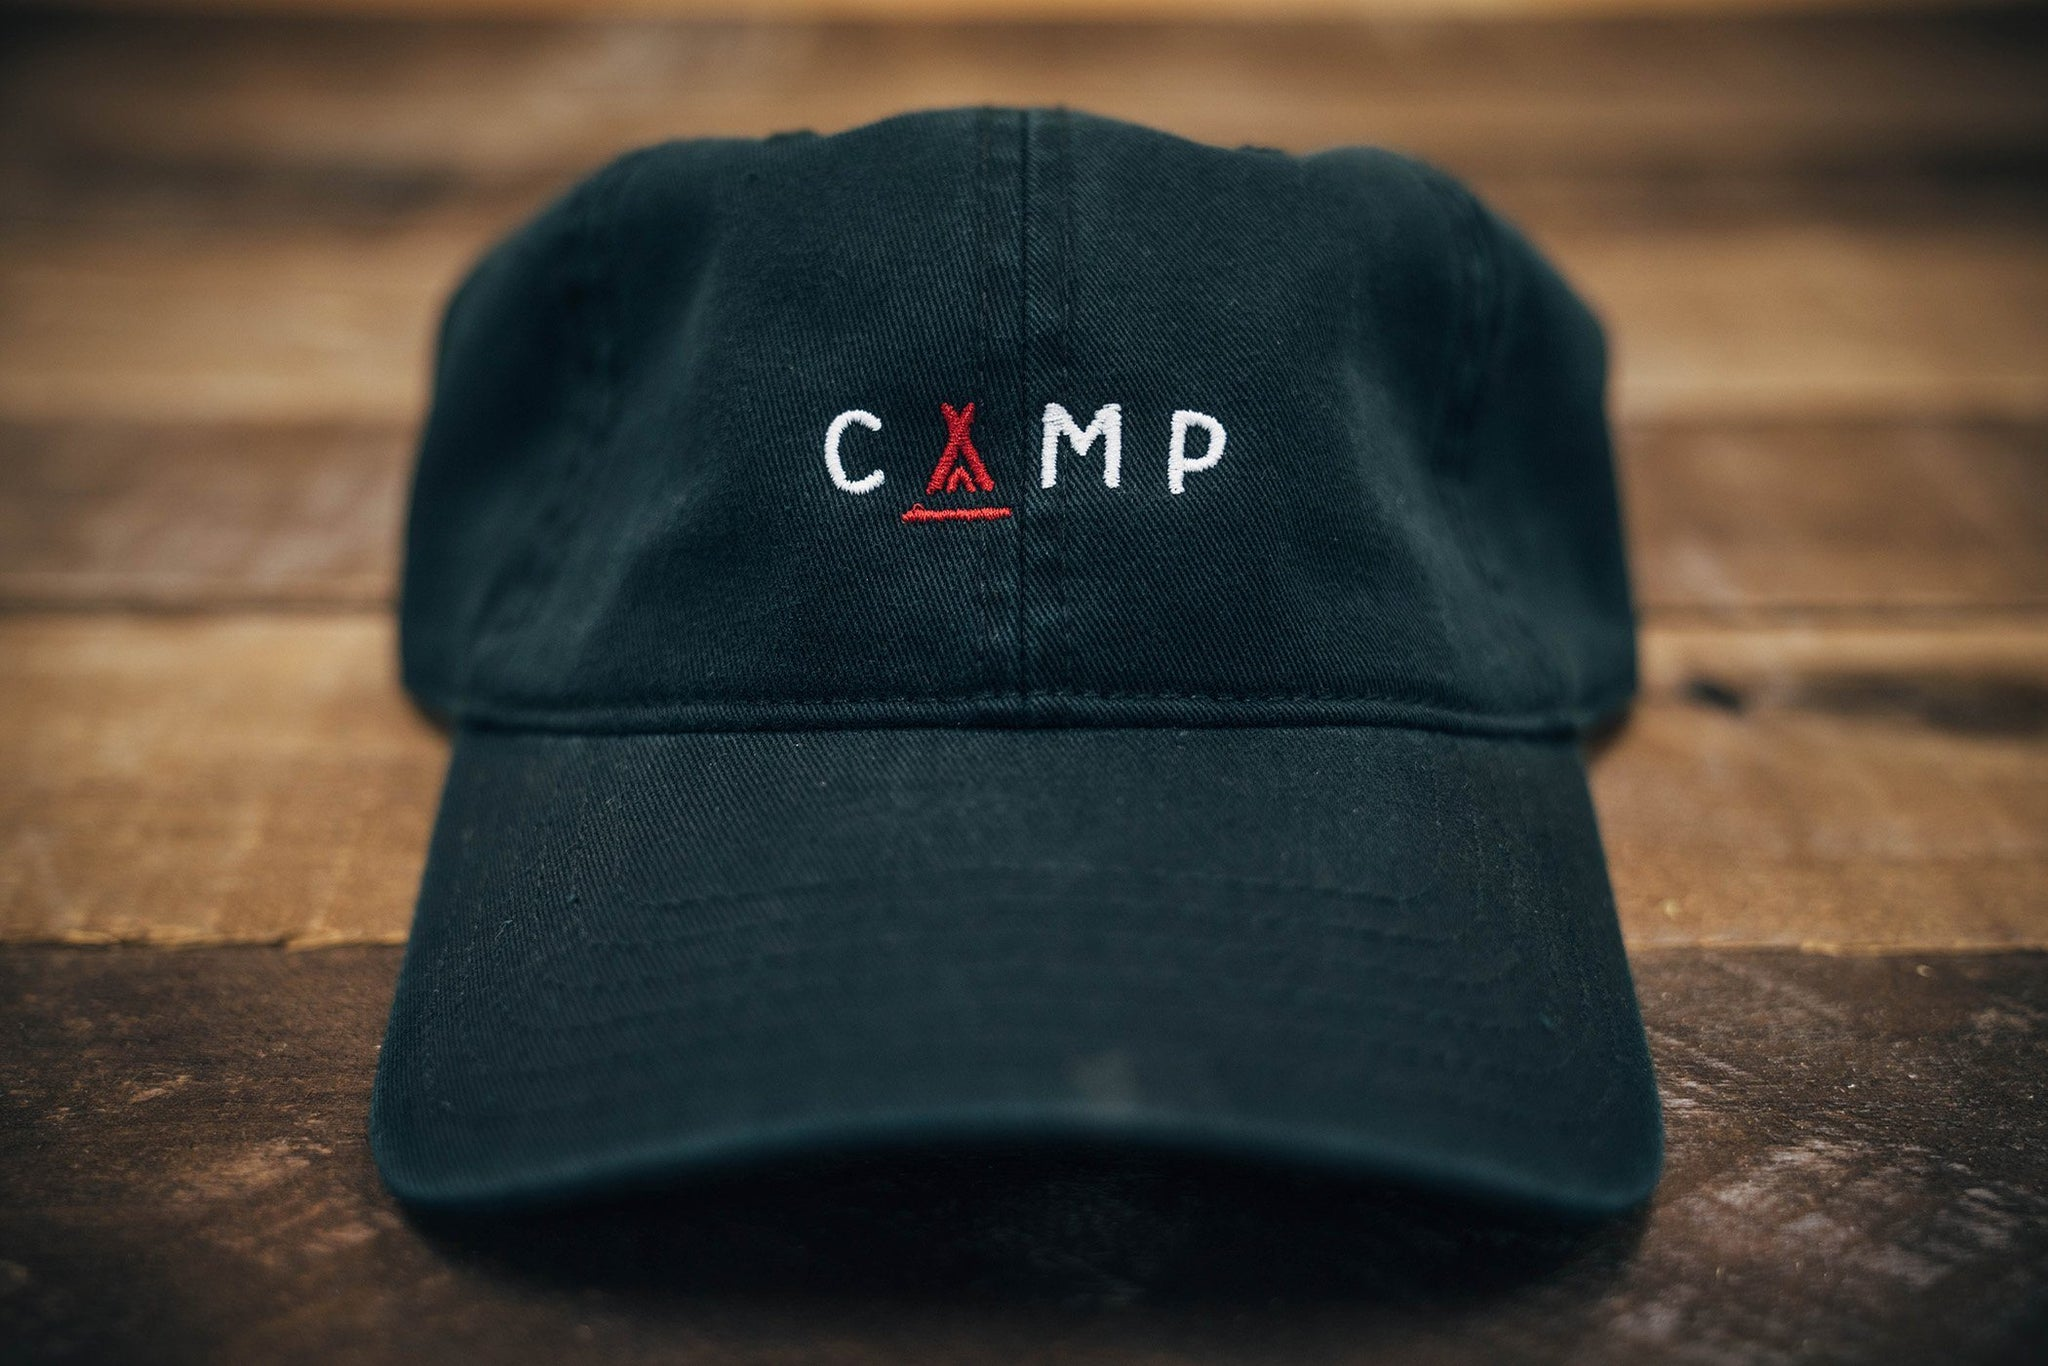 CAMP Dad Hat - The Parks Apparel